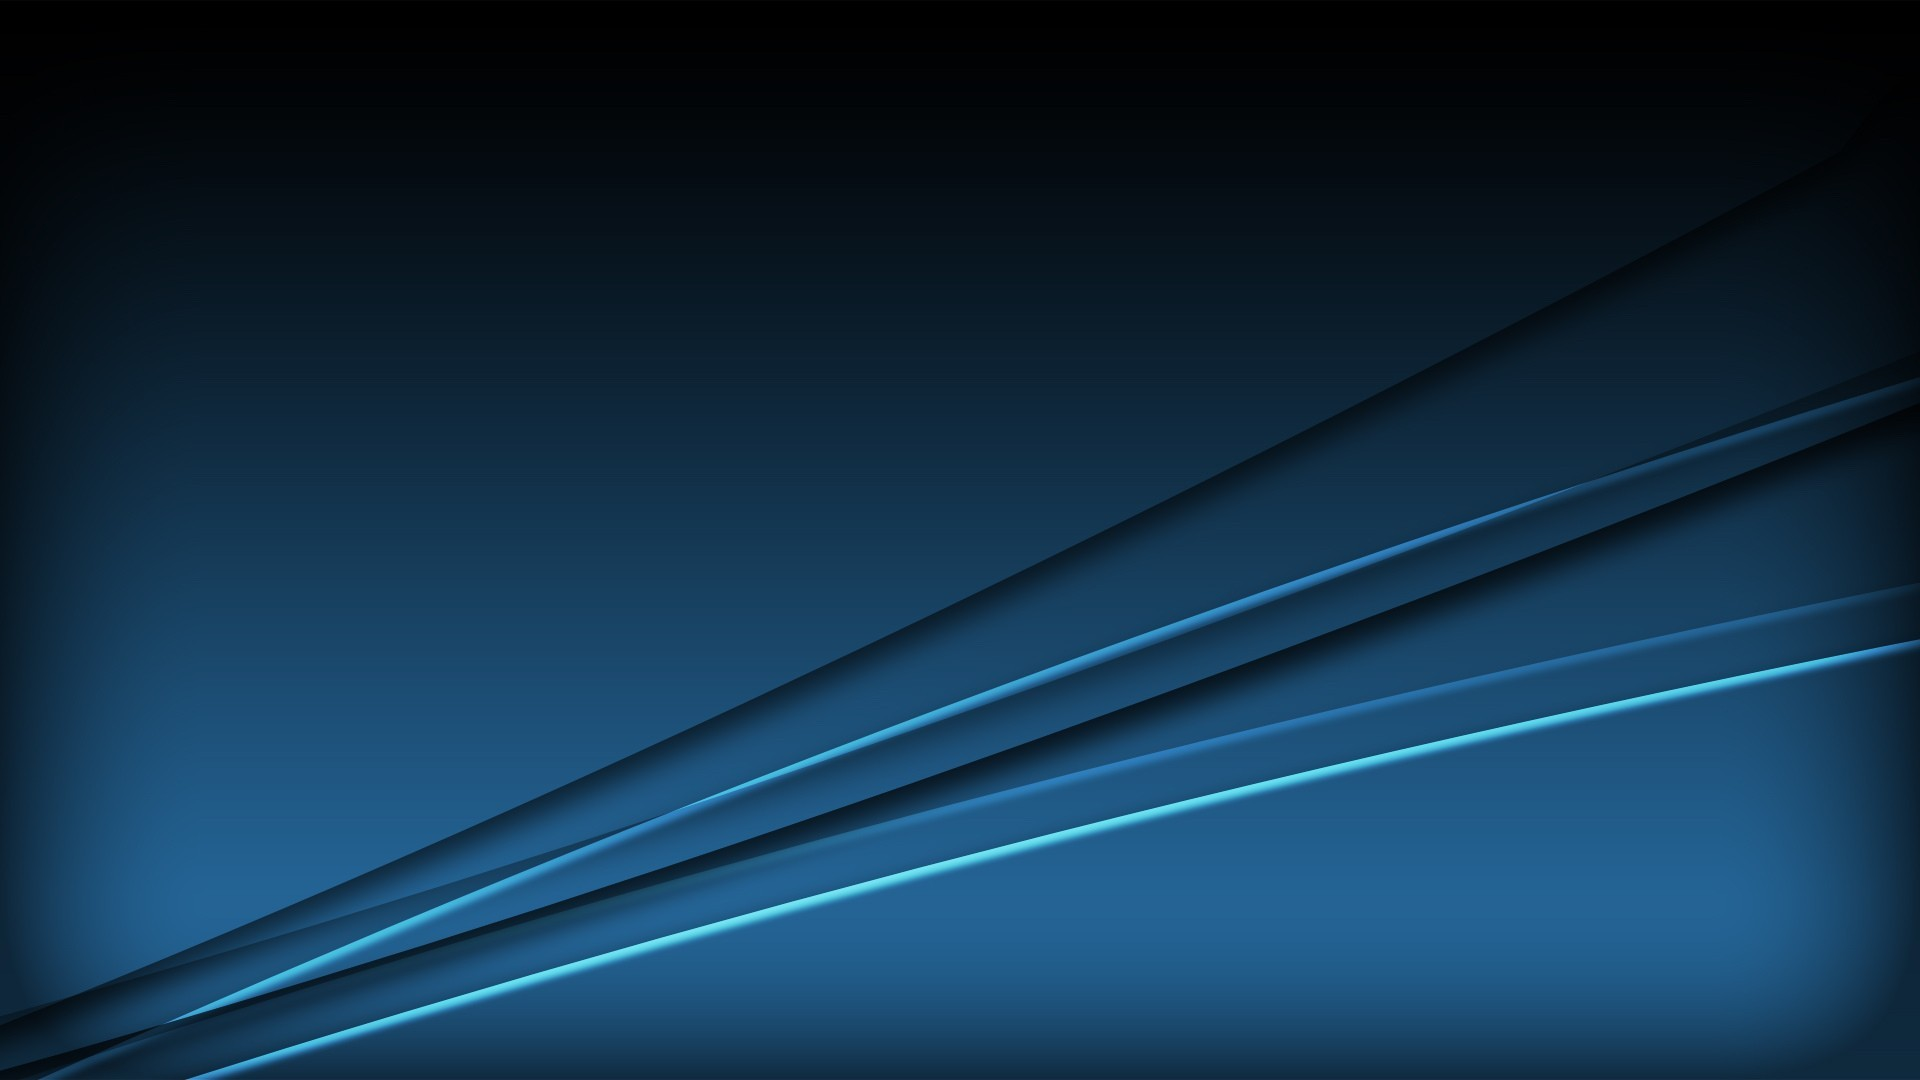 Abstract blue minimalistic computer graphics wallpaper for Graphic wallpaper